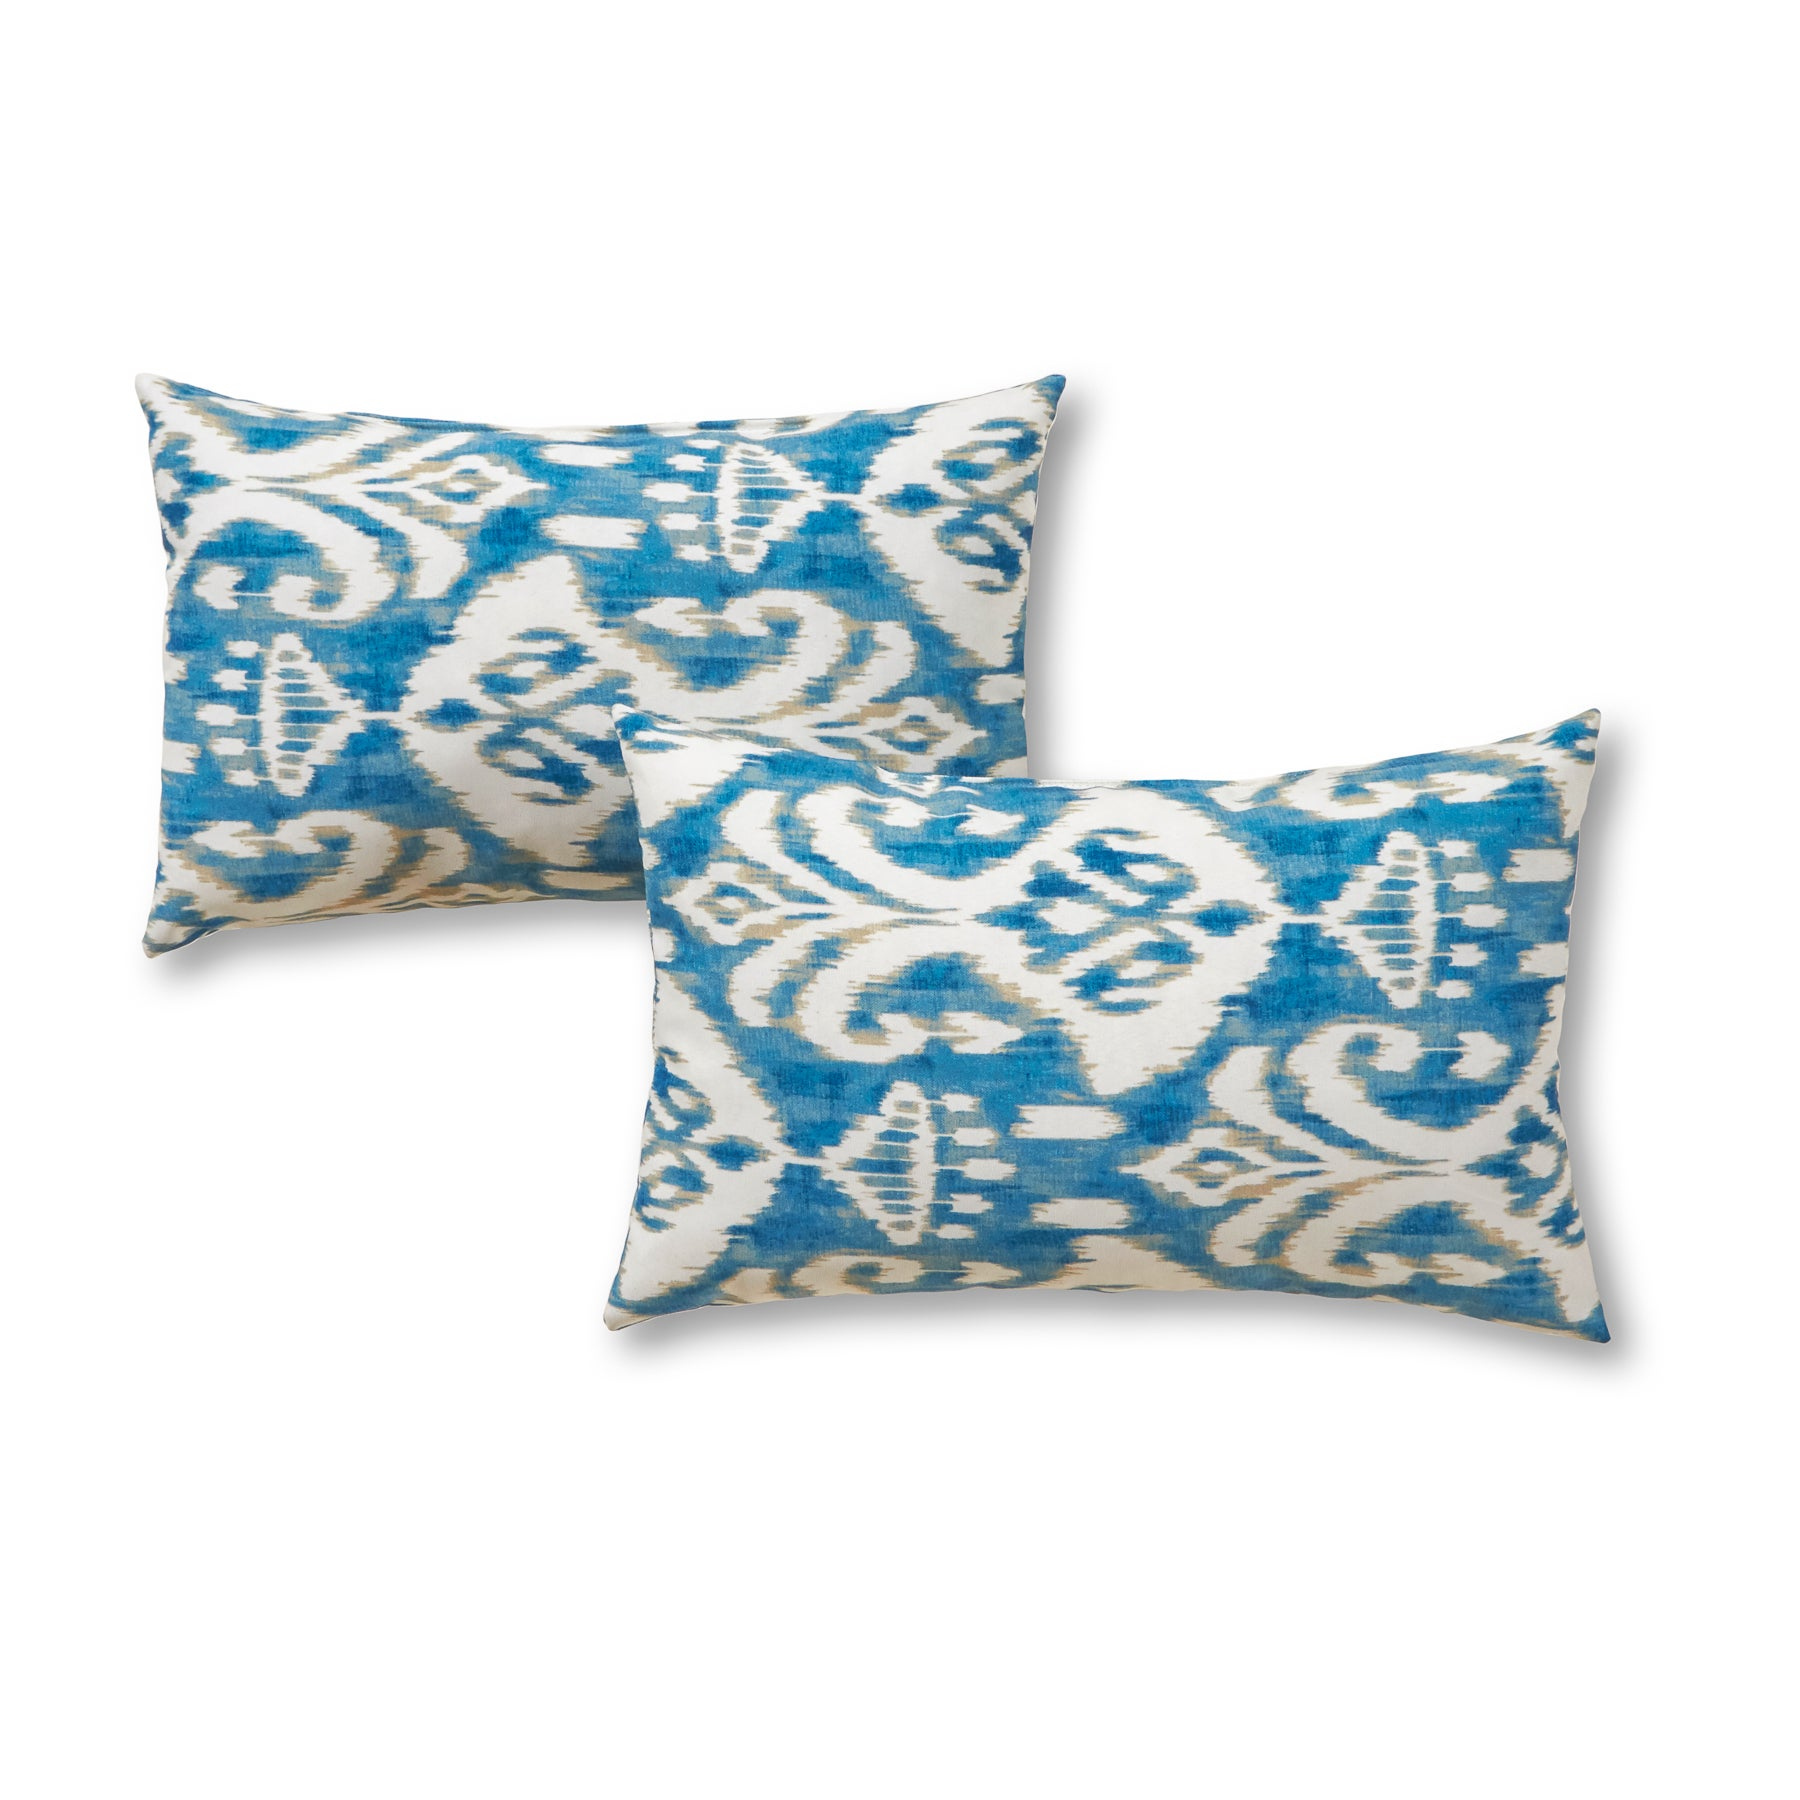 amazon pillow com accent pillows aquasealpro dark throw outdoor pics quartz tamara perfect of paisley teal outstanding